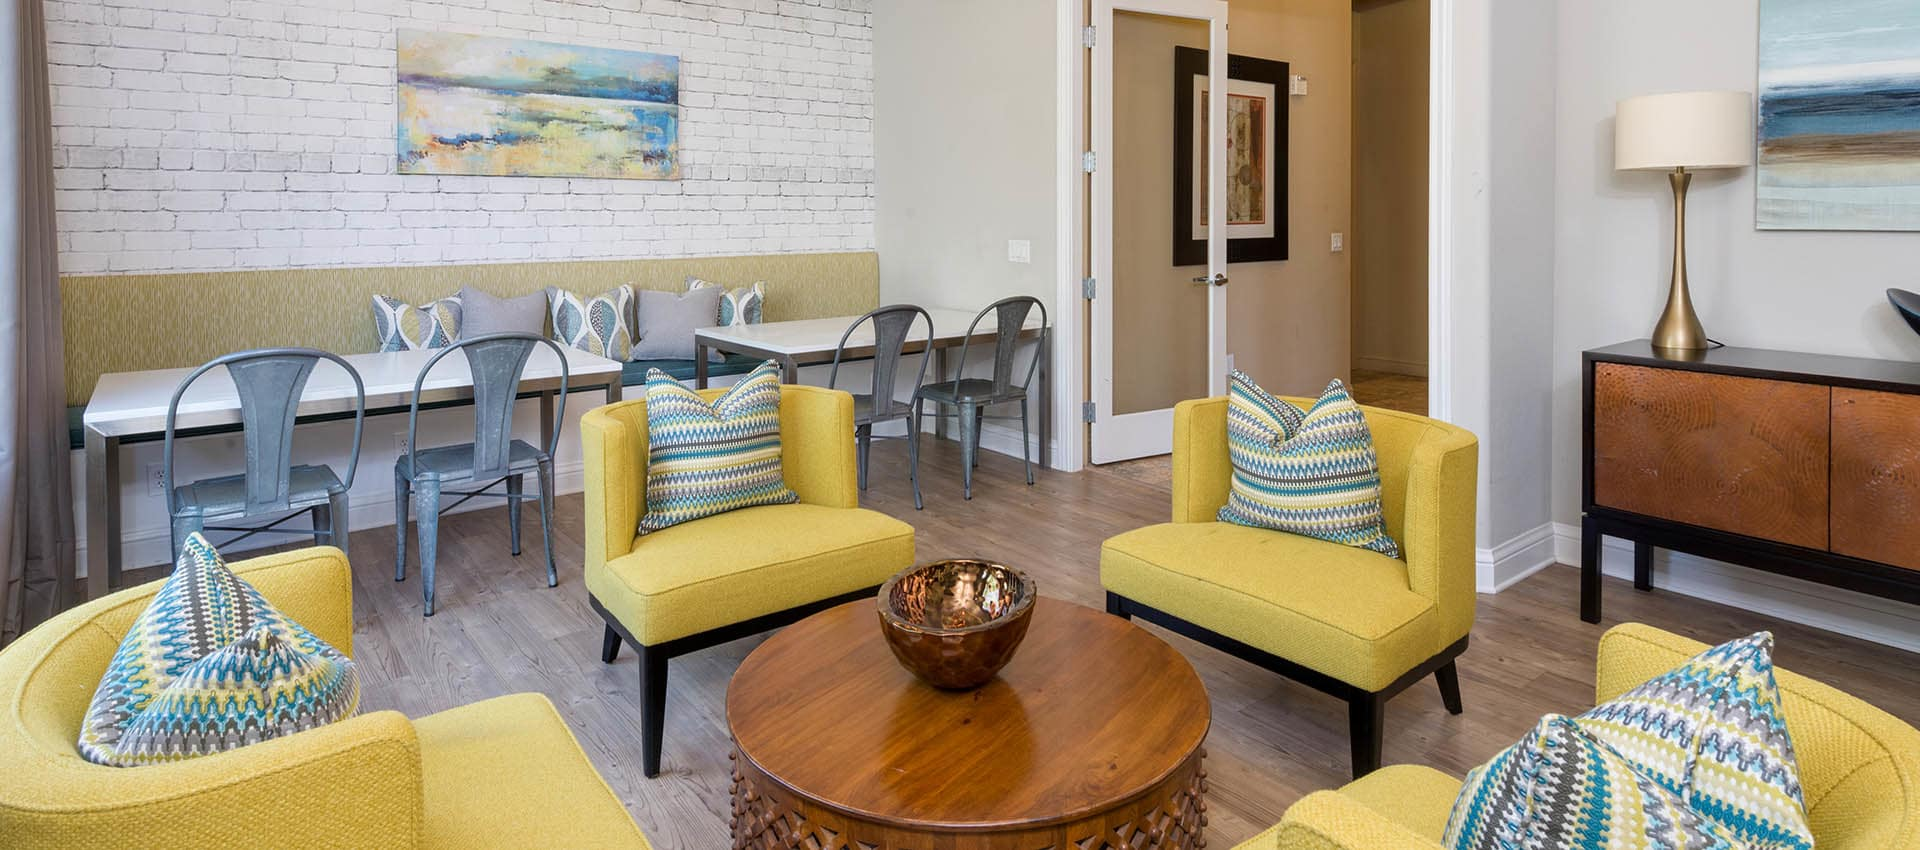 Resident Lounge at The Artisan Apartment Homes